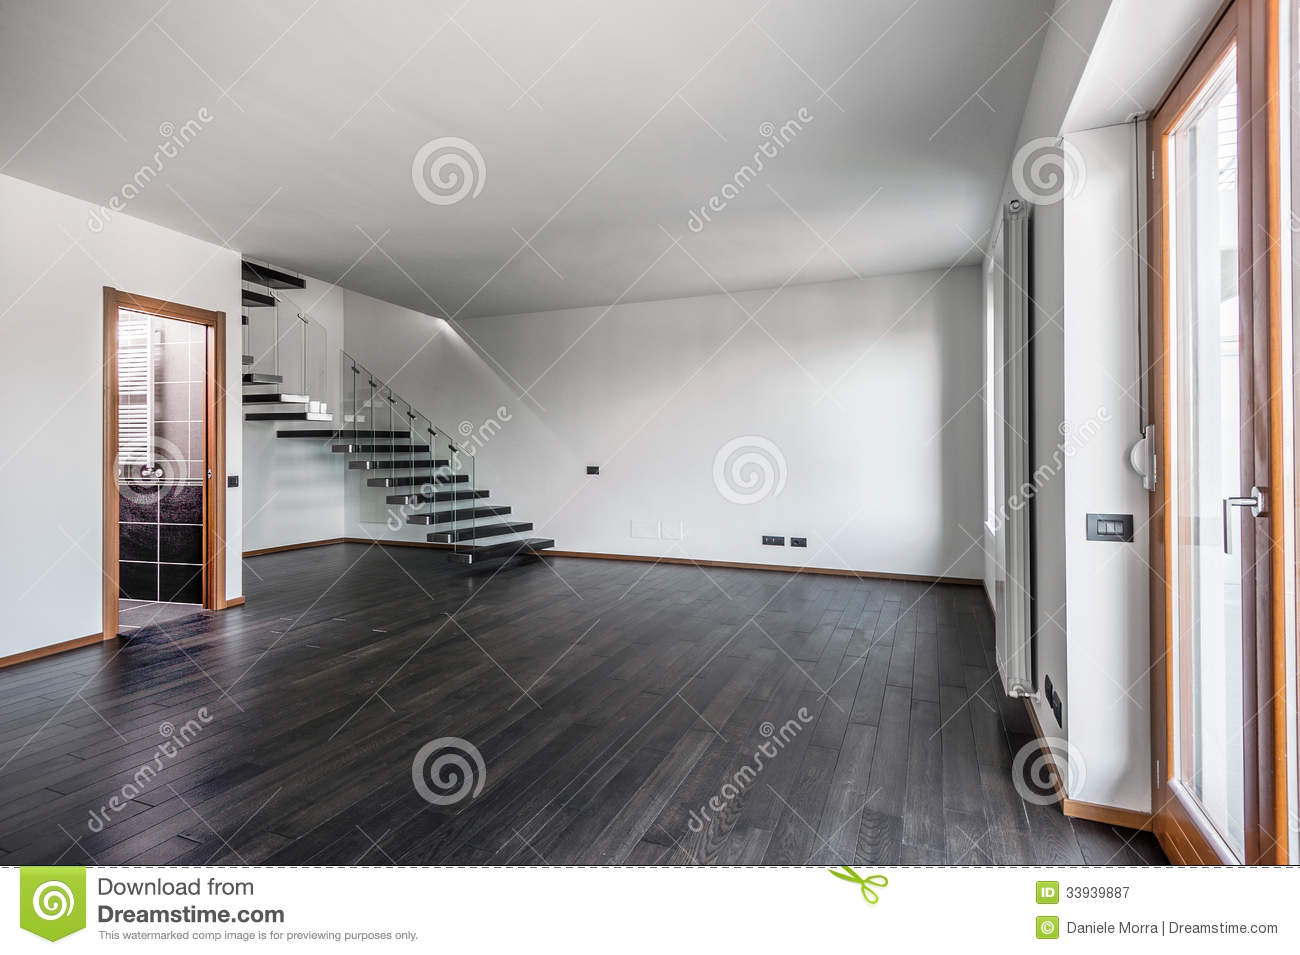 Royalty Free Stock Photography Modern Empty Interior Dark Parquet Staircase Room Unselled Apartment Image33939887 on living room home plans